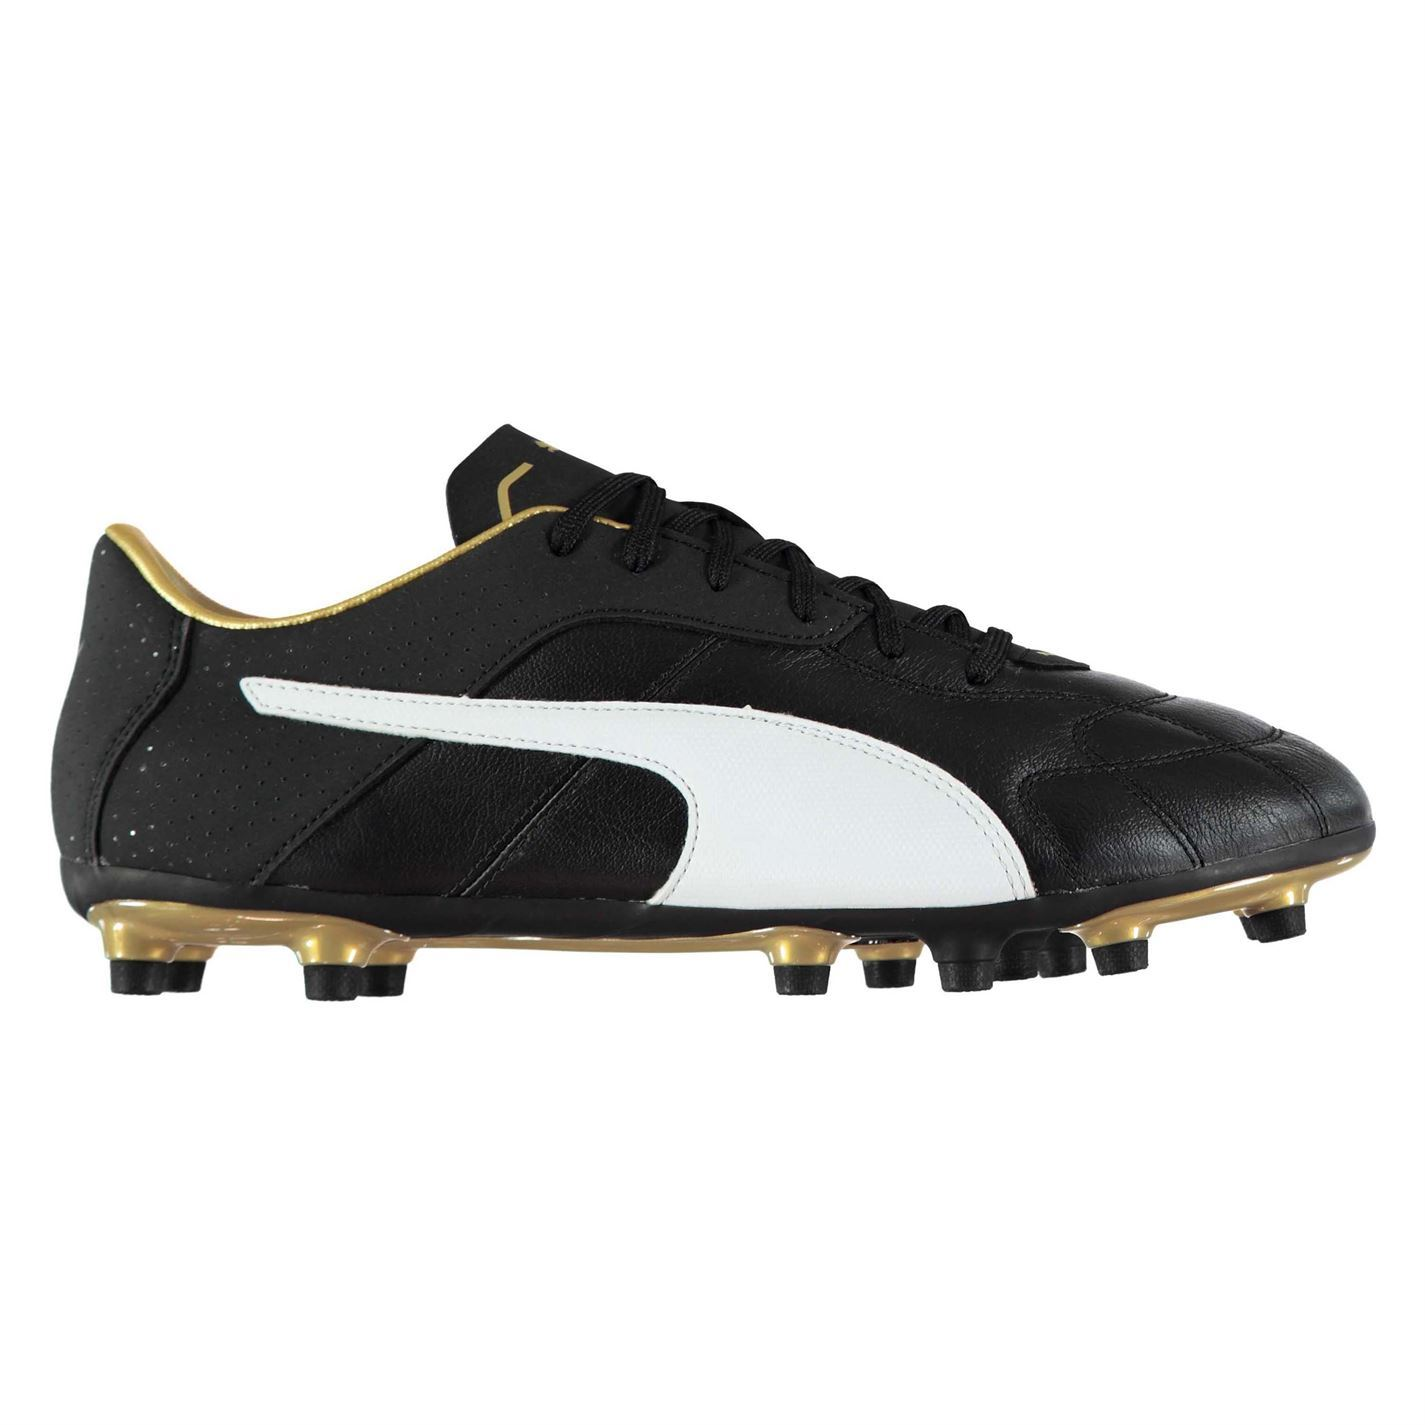 Details about Puma Esito C FG Firm Ground Football Boots Mens Black Soccer Shoes Cleats